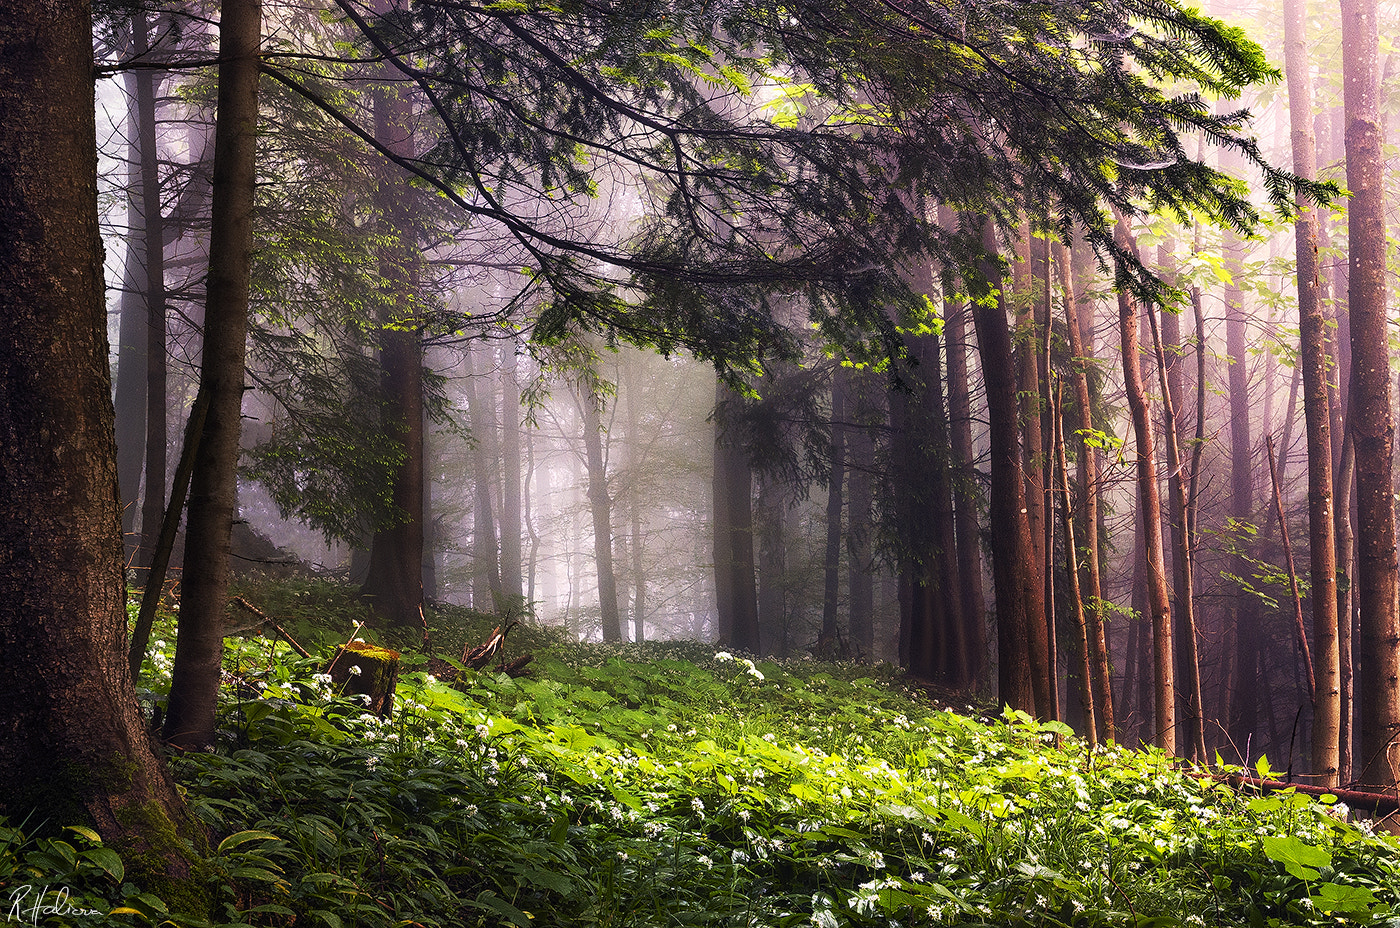 Photograph Light in the Forest by Robin Halioua on 500px